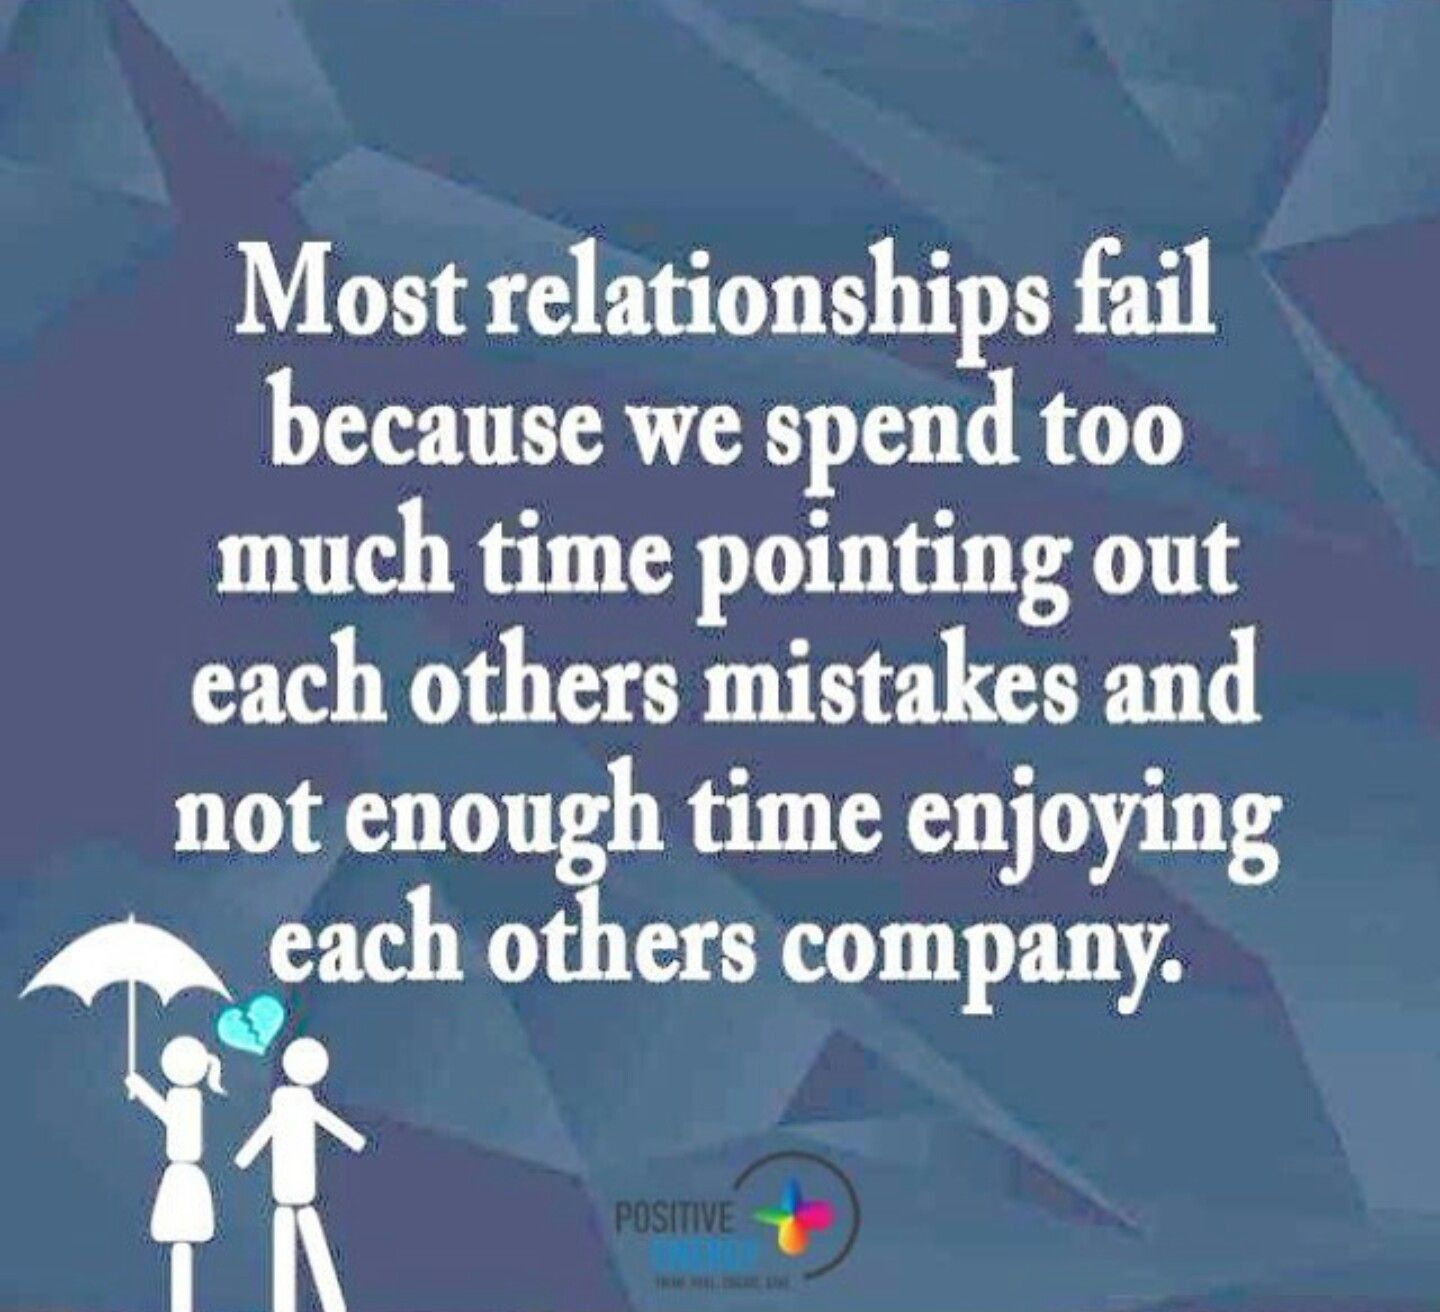 relationships | Relationship | Failing marriage, Broken heart quotes